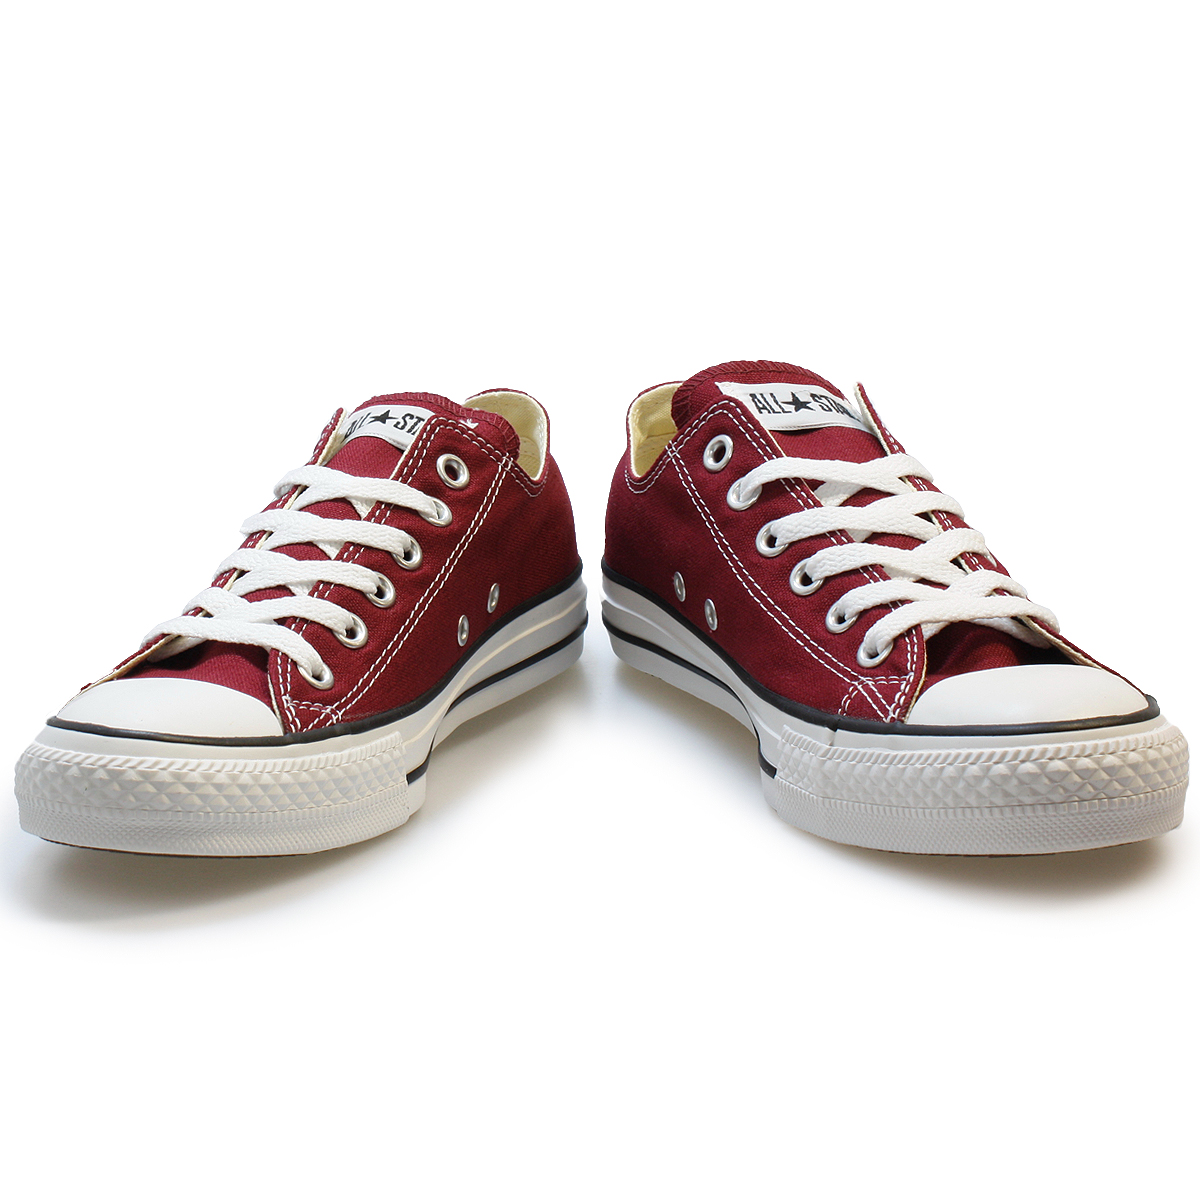 Accessories Maroon Vegan Leather Sneakers by Gymboree. Manmade material, Lace-up style, Features vegan leather, Memory foam insole, Smooth sole and Spot clean; imported. GYMBOREE REWARDS. Get in on the good stuff. Returns Ship Free. We want you to be % happy. GYMBUCKS. Stash now, cash in later. See More Ways to Shop. Close.